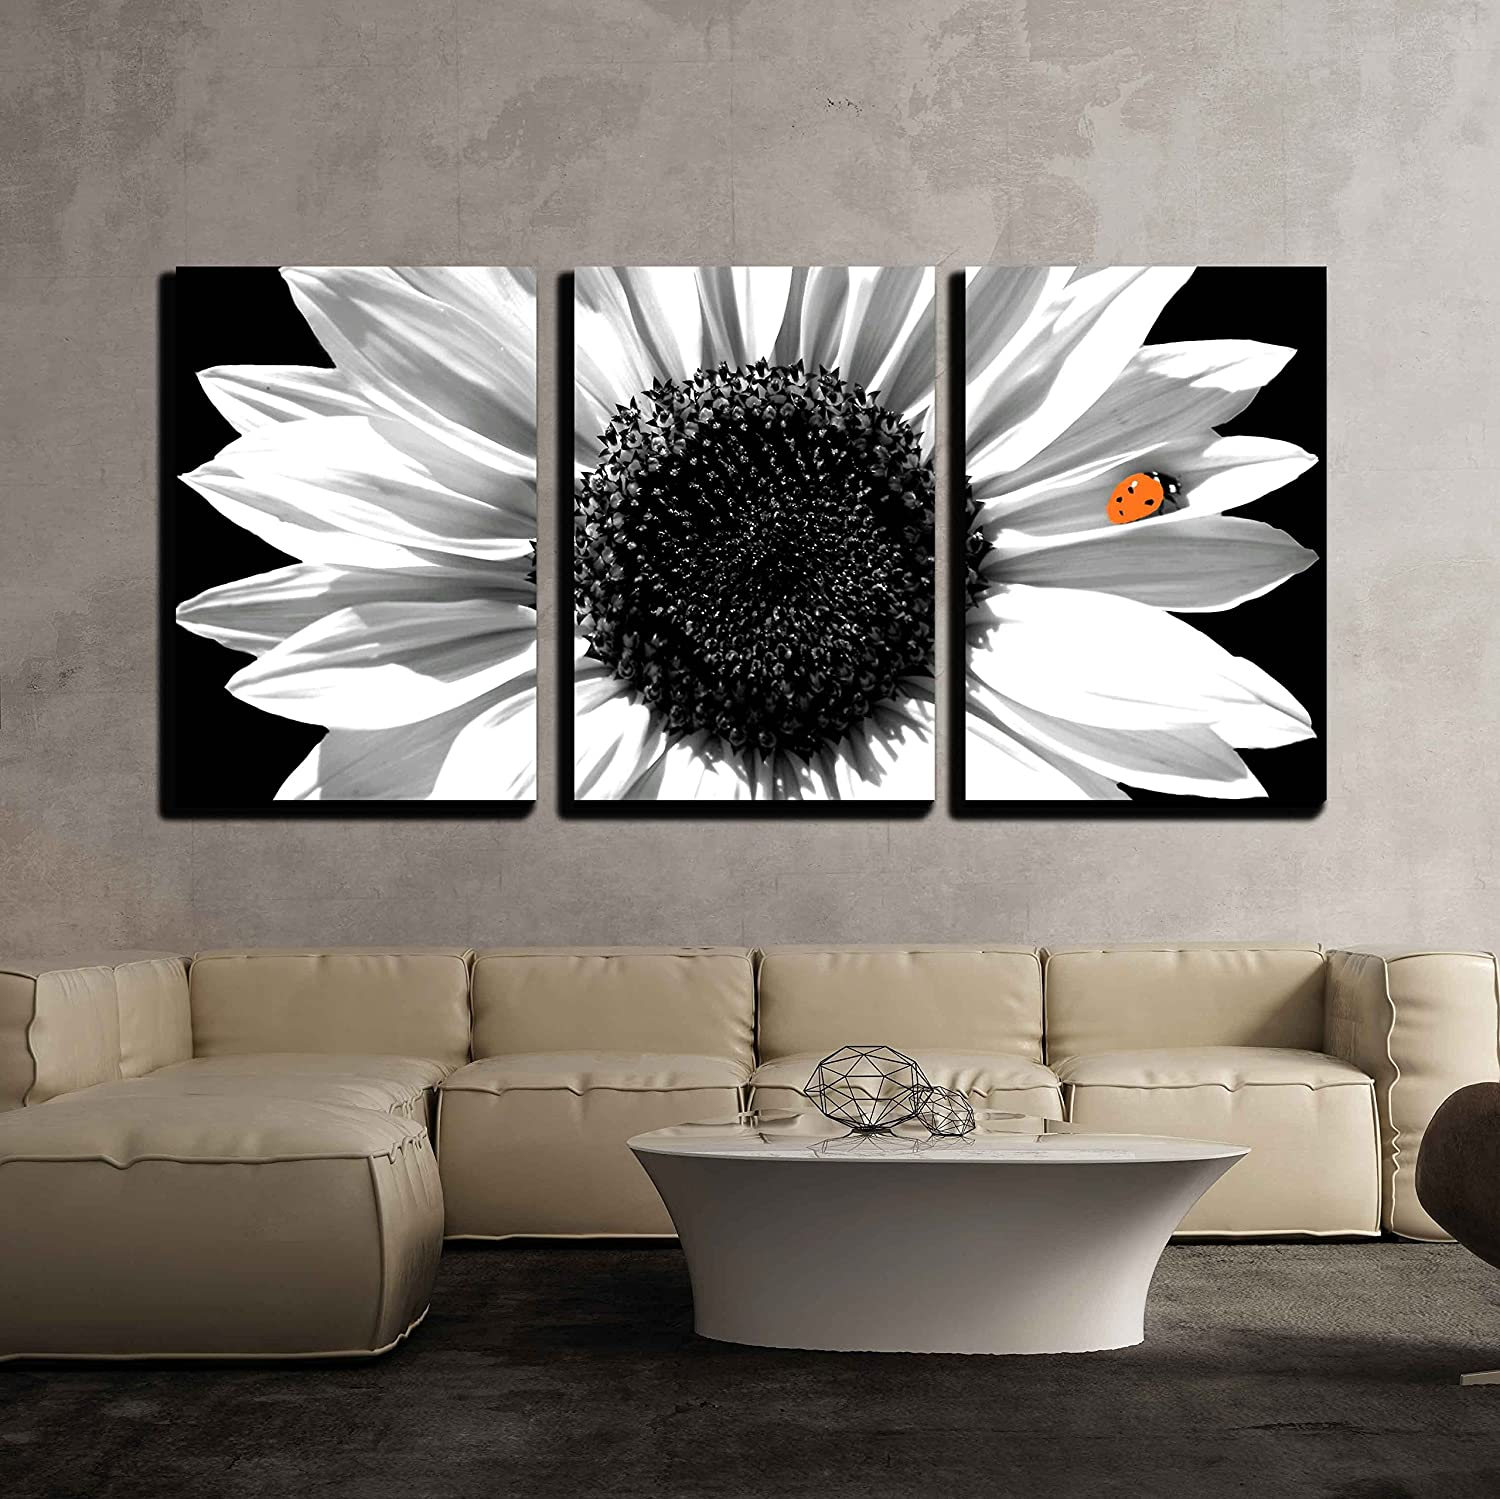 Sunflower In Black And White Wall Decor X3 Panels Canvas Art Wall26